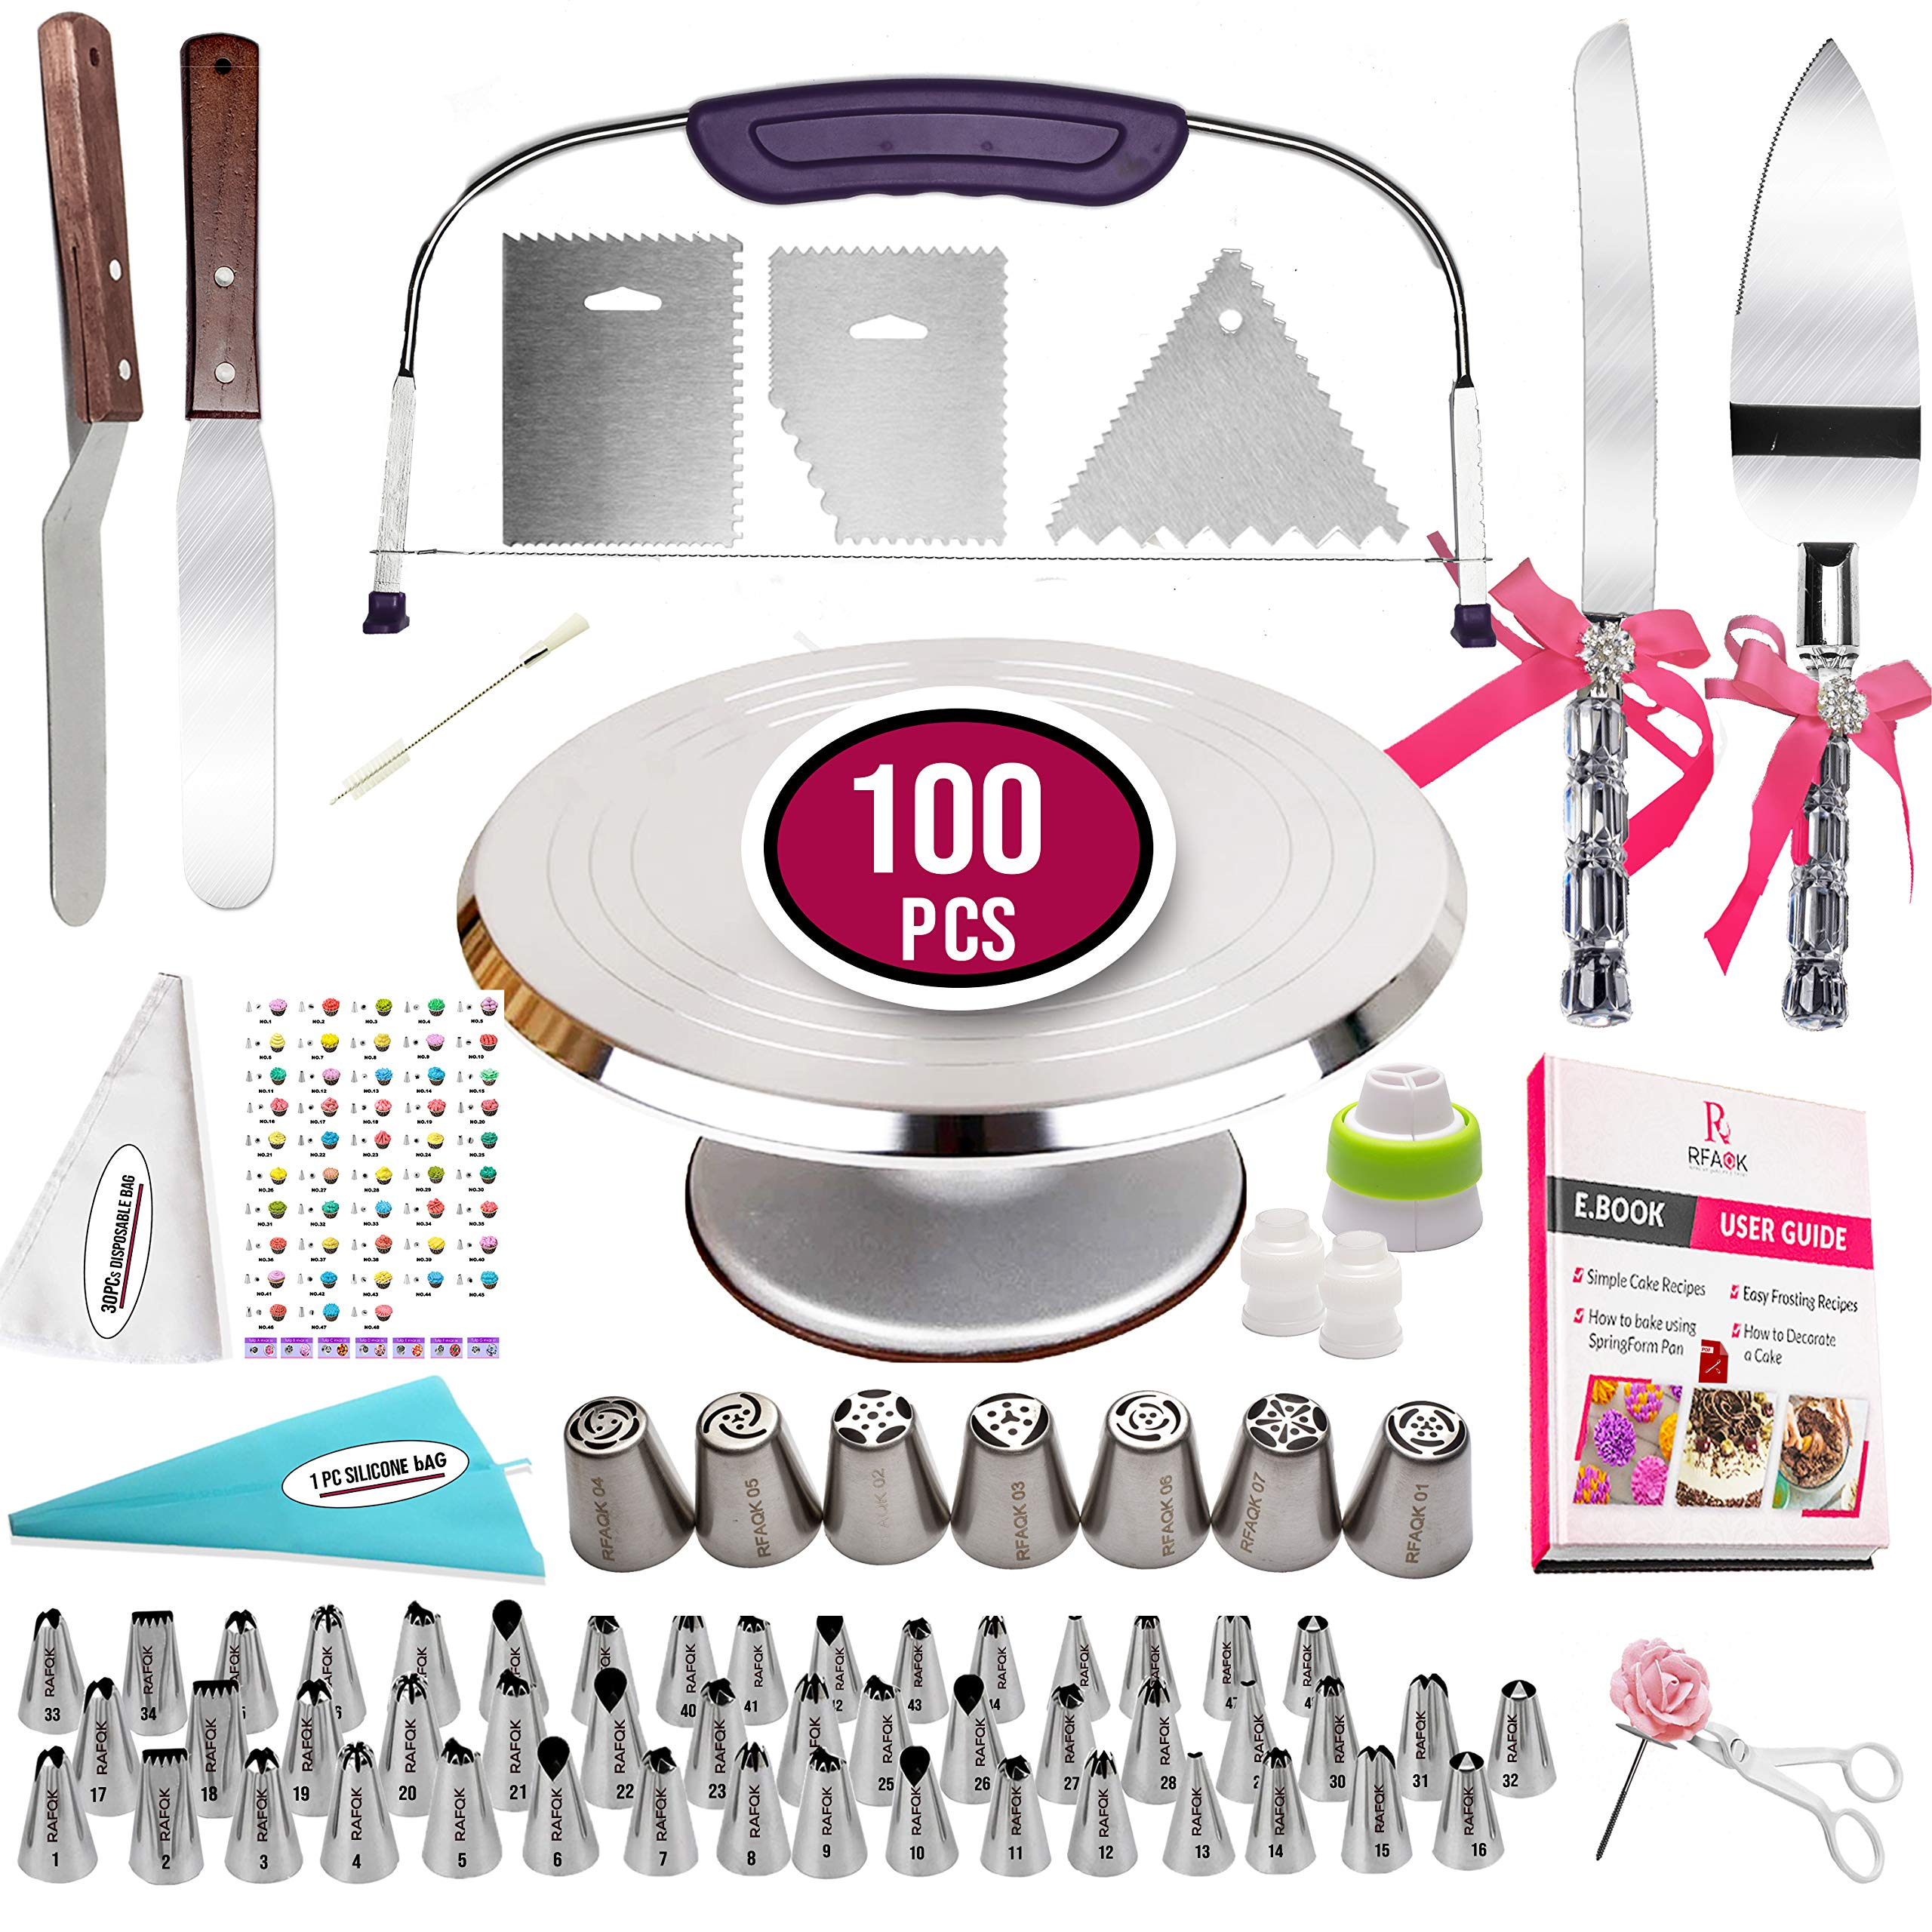 100 Pcs Cake Decorating Kit with Aluminum Metal Turntable-Rotating Stand-Cake server & knife set-48 Numbered Icing tips-7 Russian Piping nozzles-Straight & Angled Spatula-Cake Leveler& Baking supplies by RFAQK (Image #1)